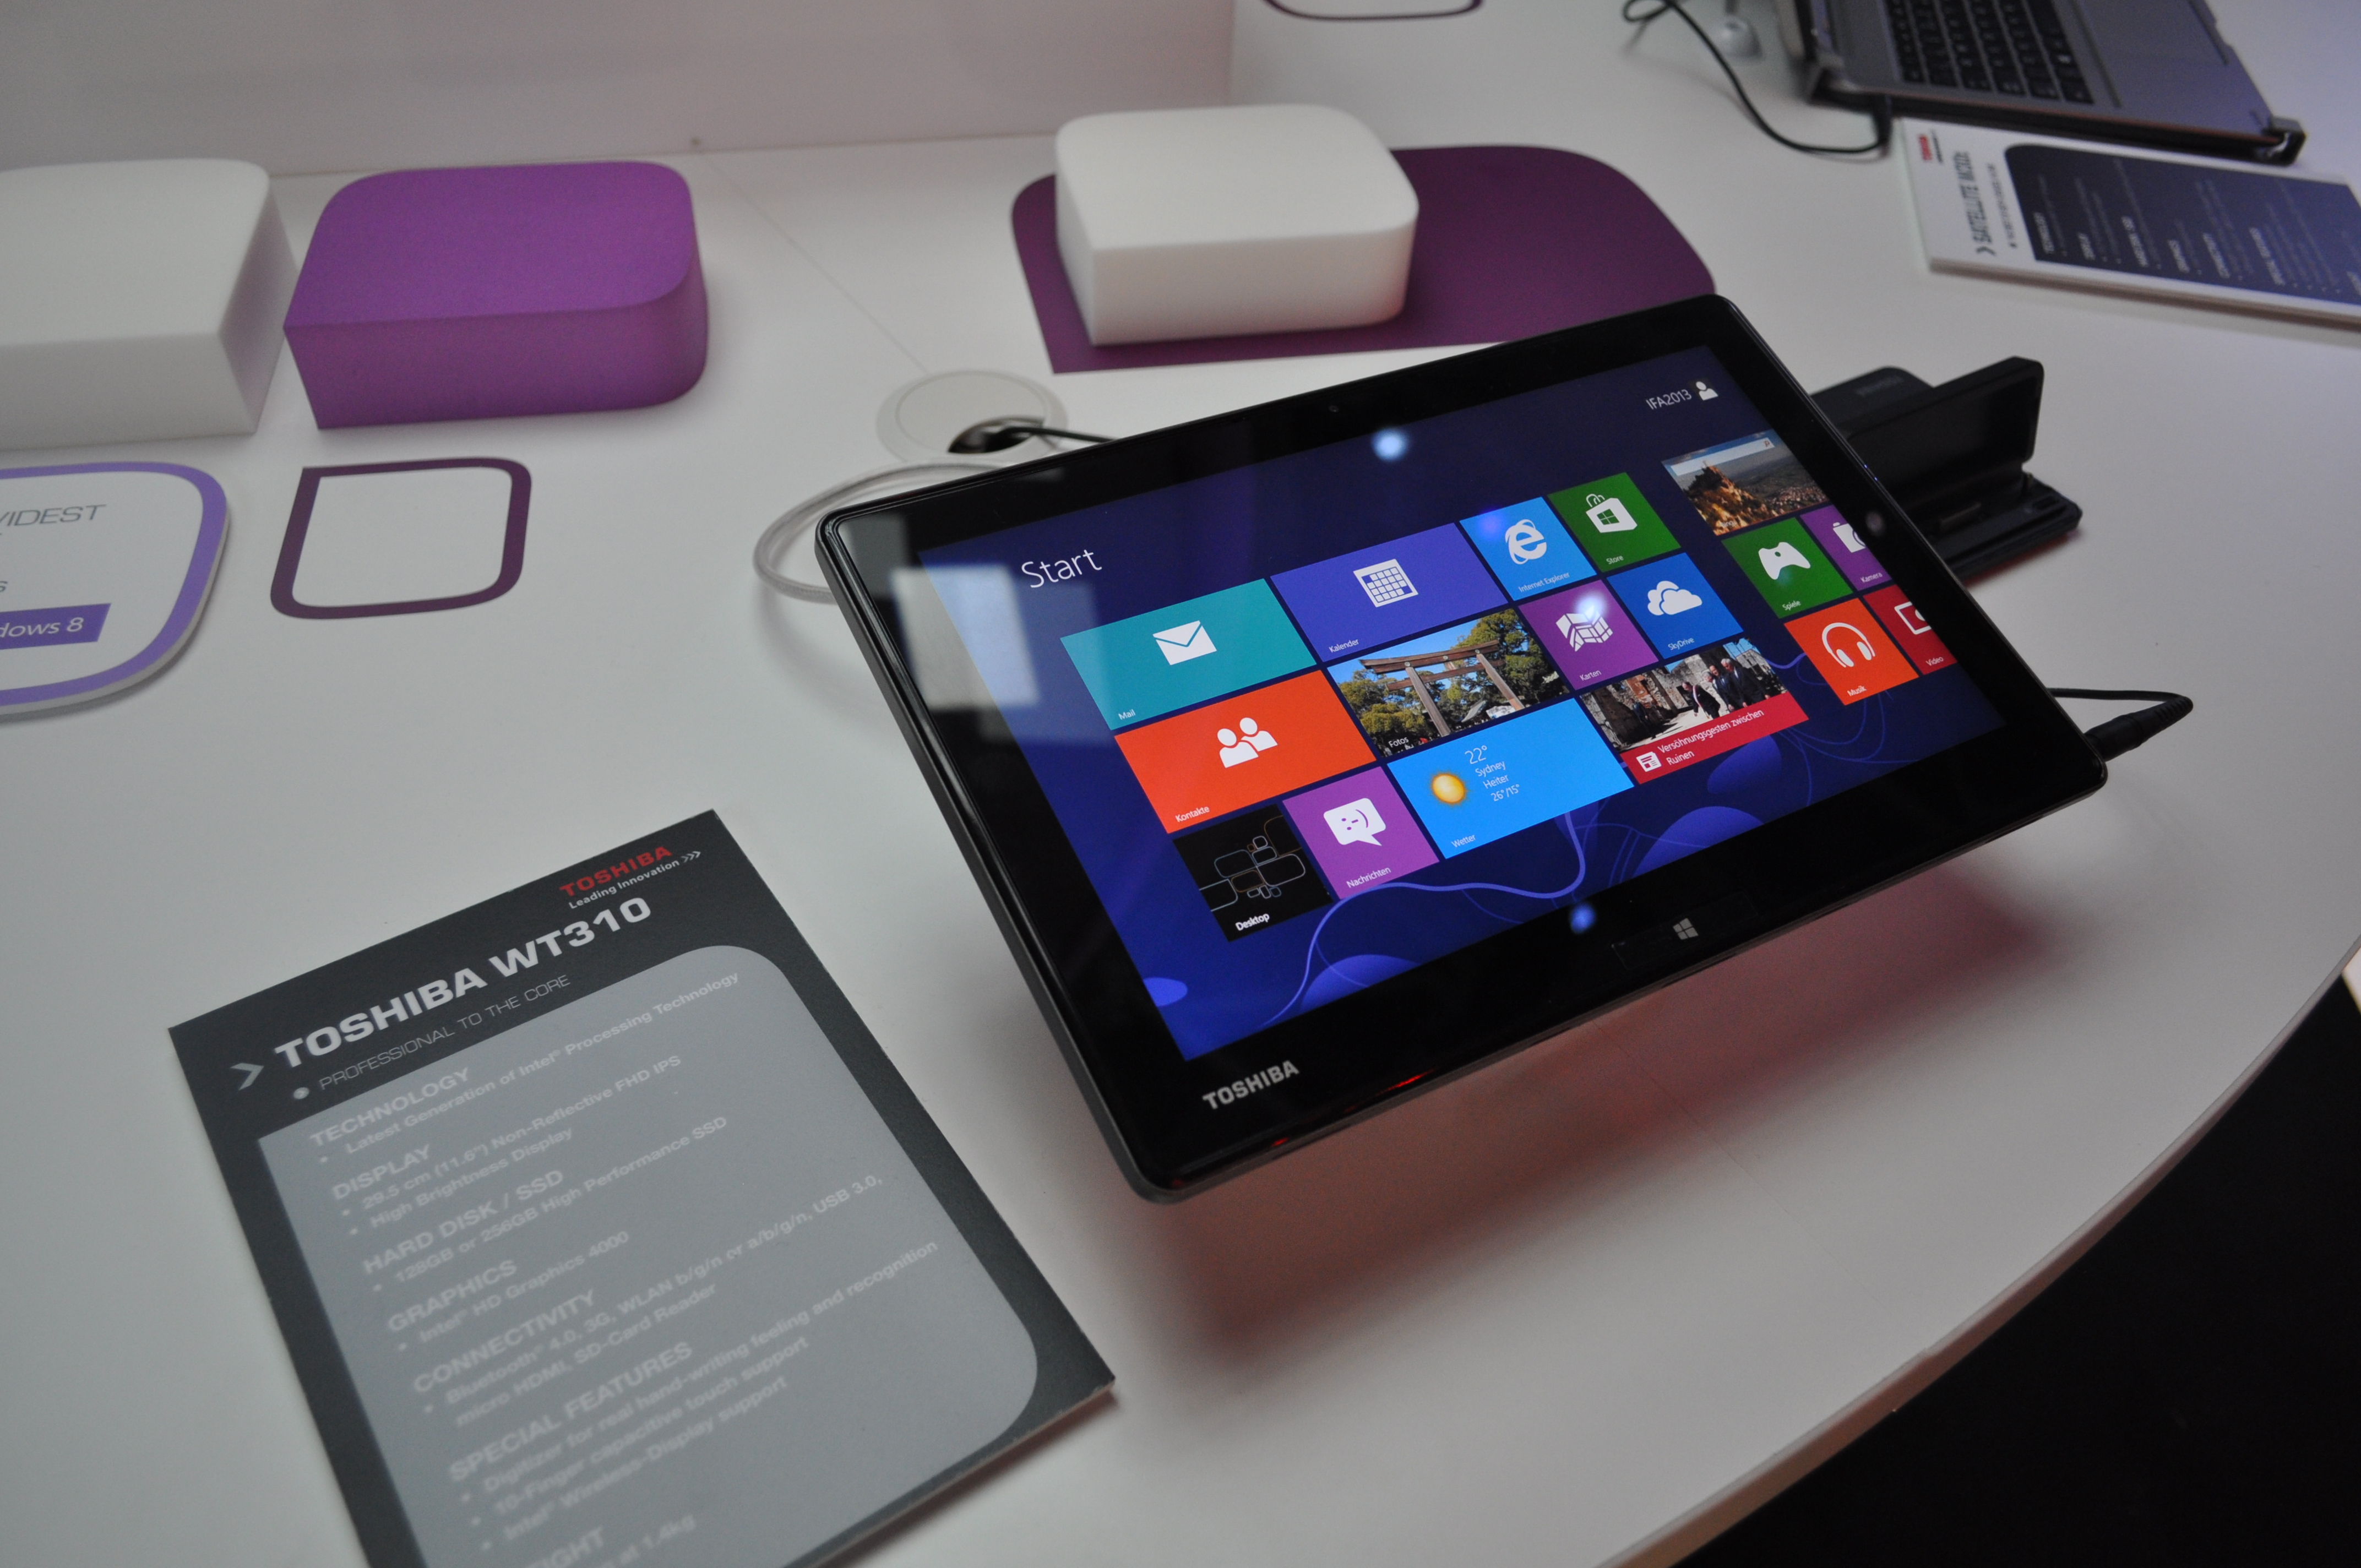 Tablet Toshiby oparty na Windows 8